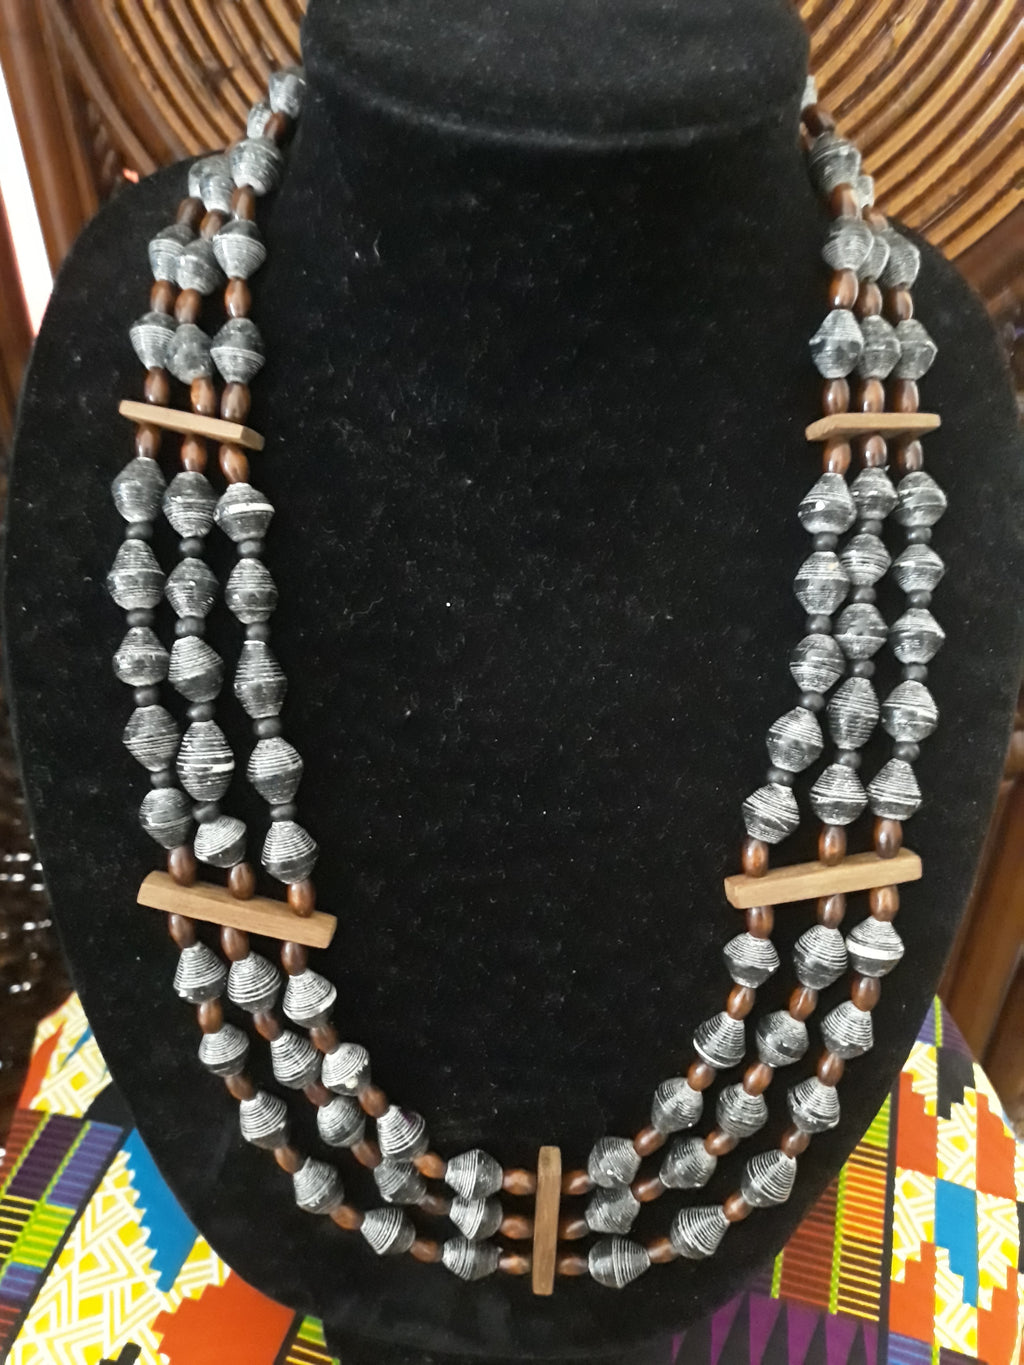 Black Sead Beads, Wooden Dividers and Beads